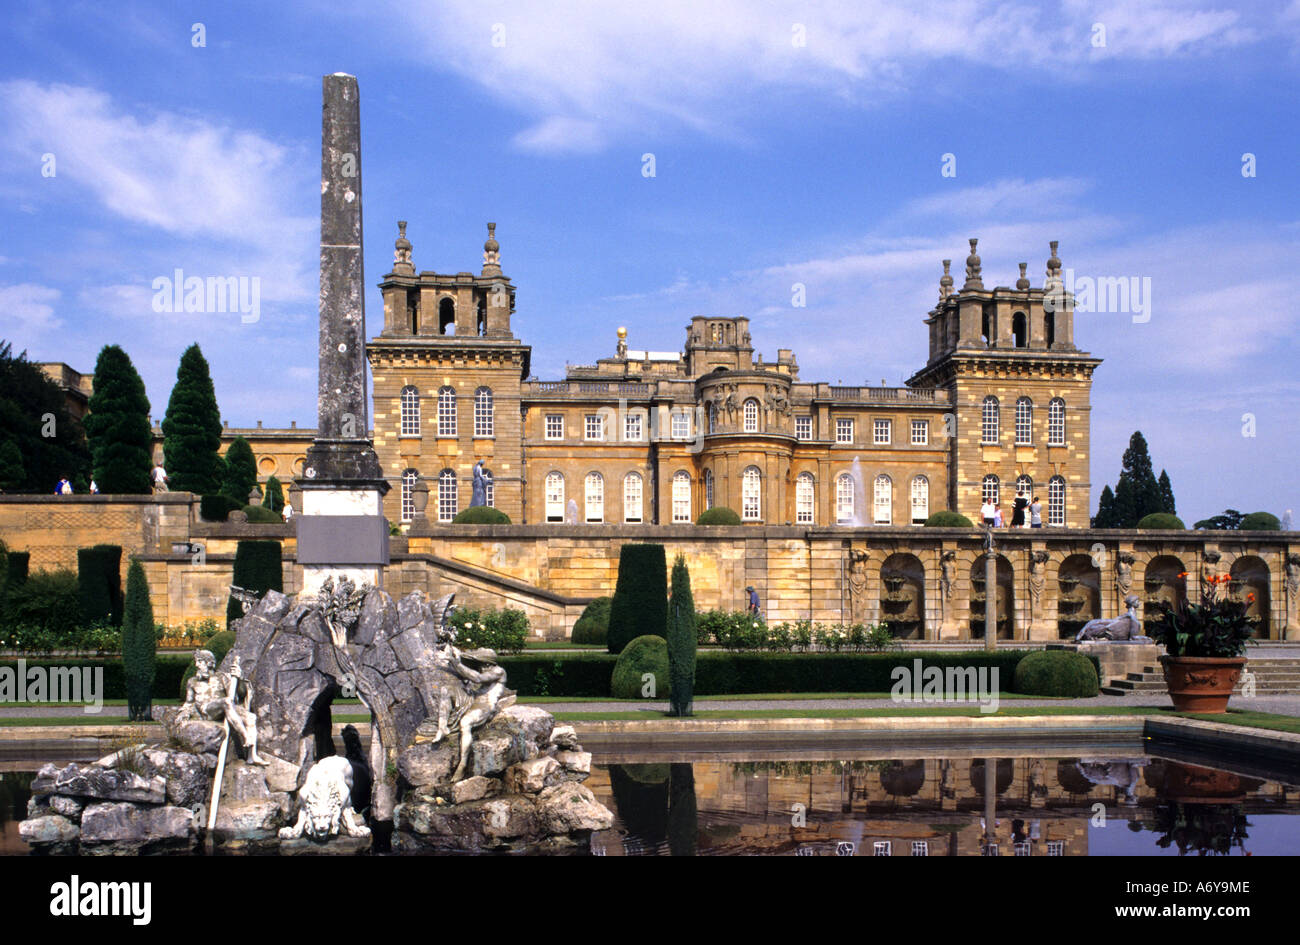 United Kingdom Blenheim Palace Winston Churchill - Stock Image